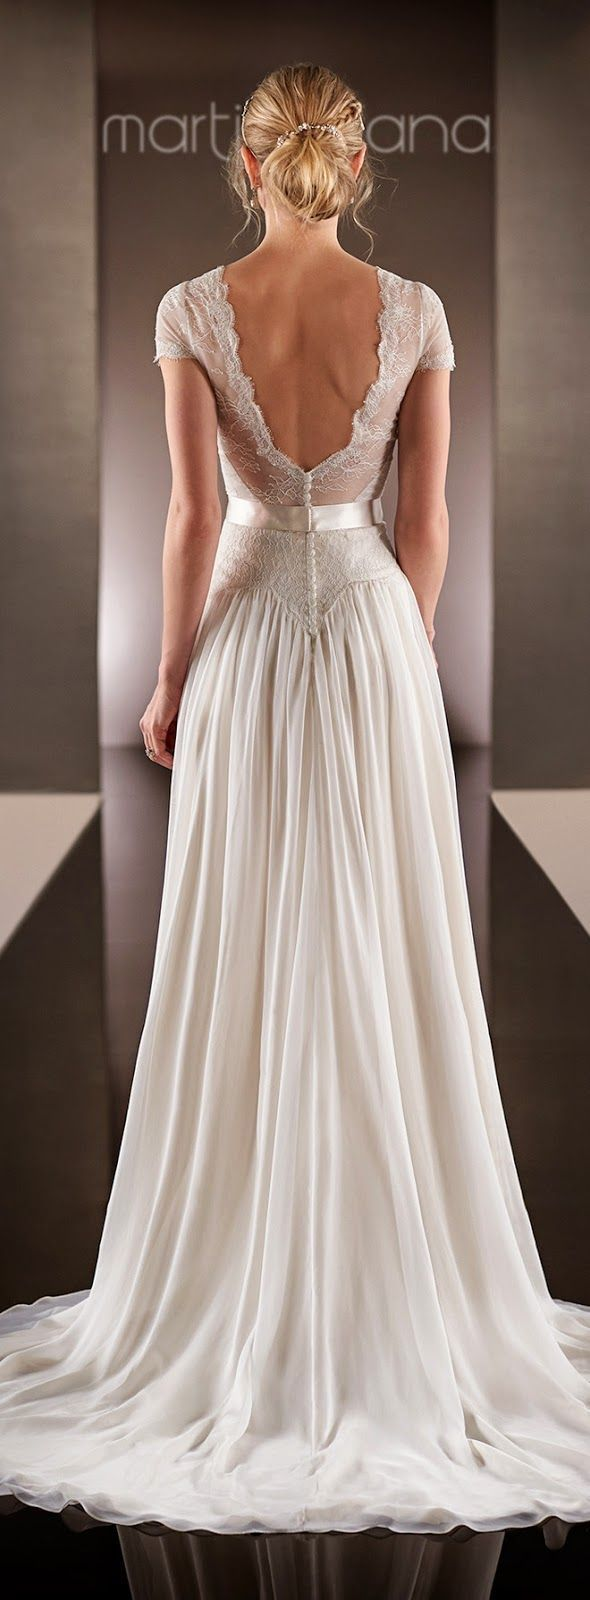 Martina Liana Spring 2015 has the stuff for a bride who needs a boost to her booty like I could have used, the heart shape over the bum makes this gown that extra bit more feminine and lovely